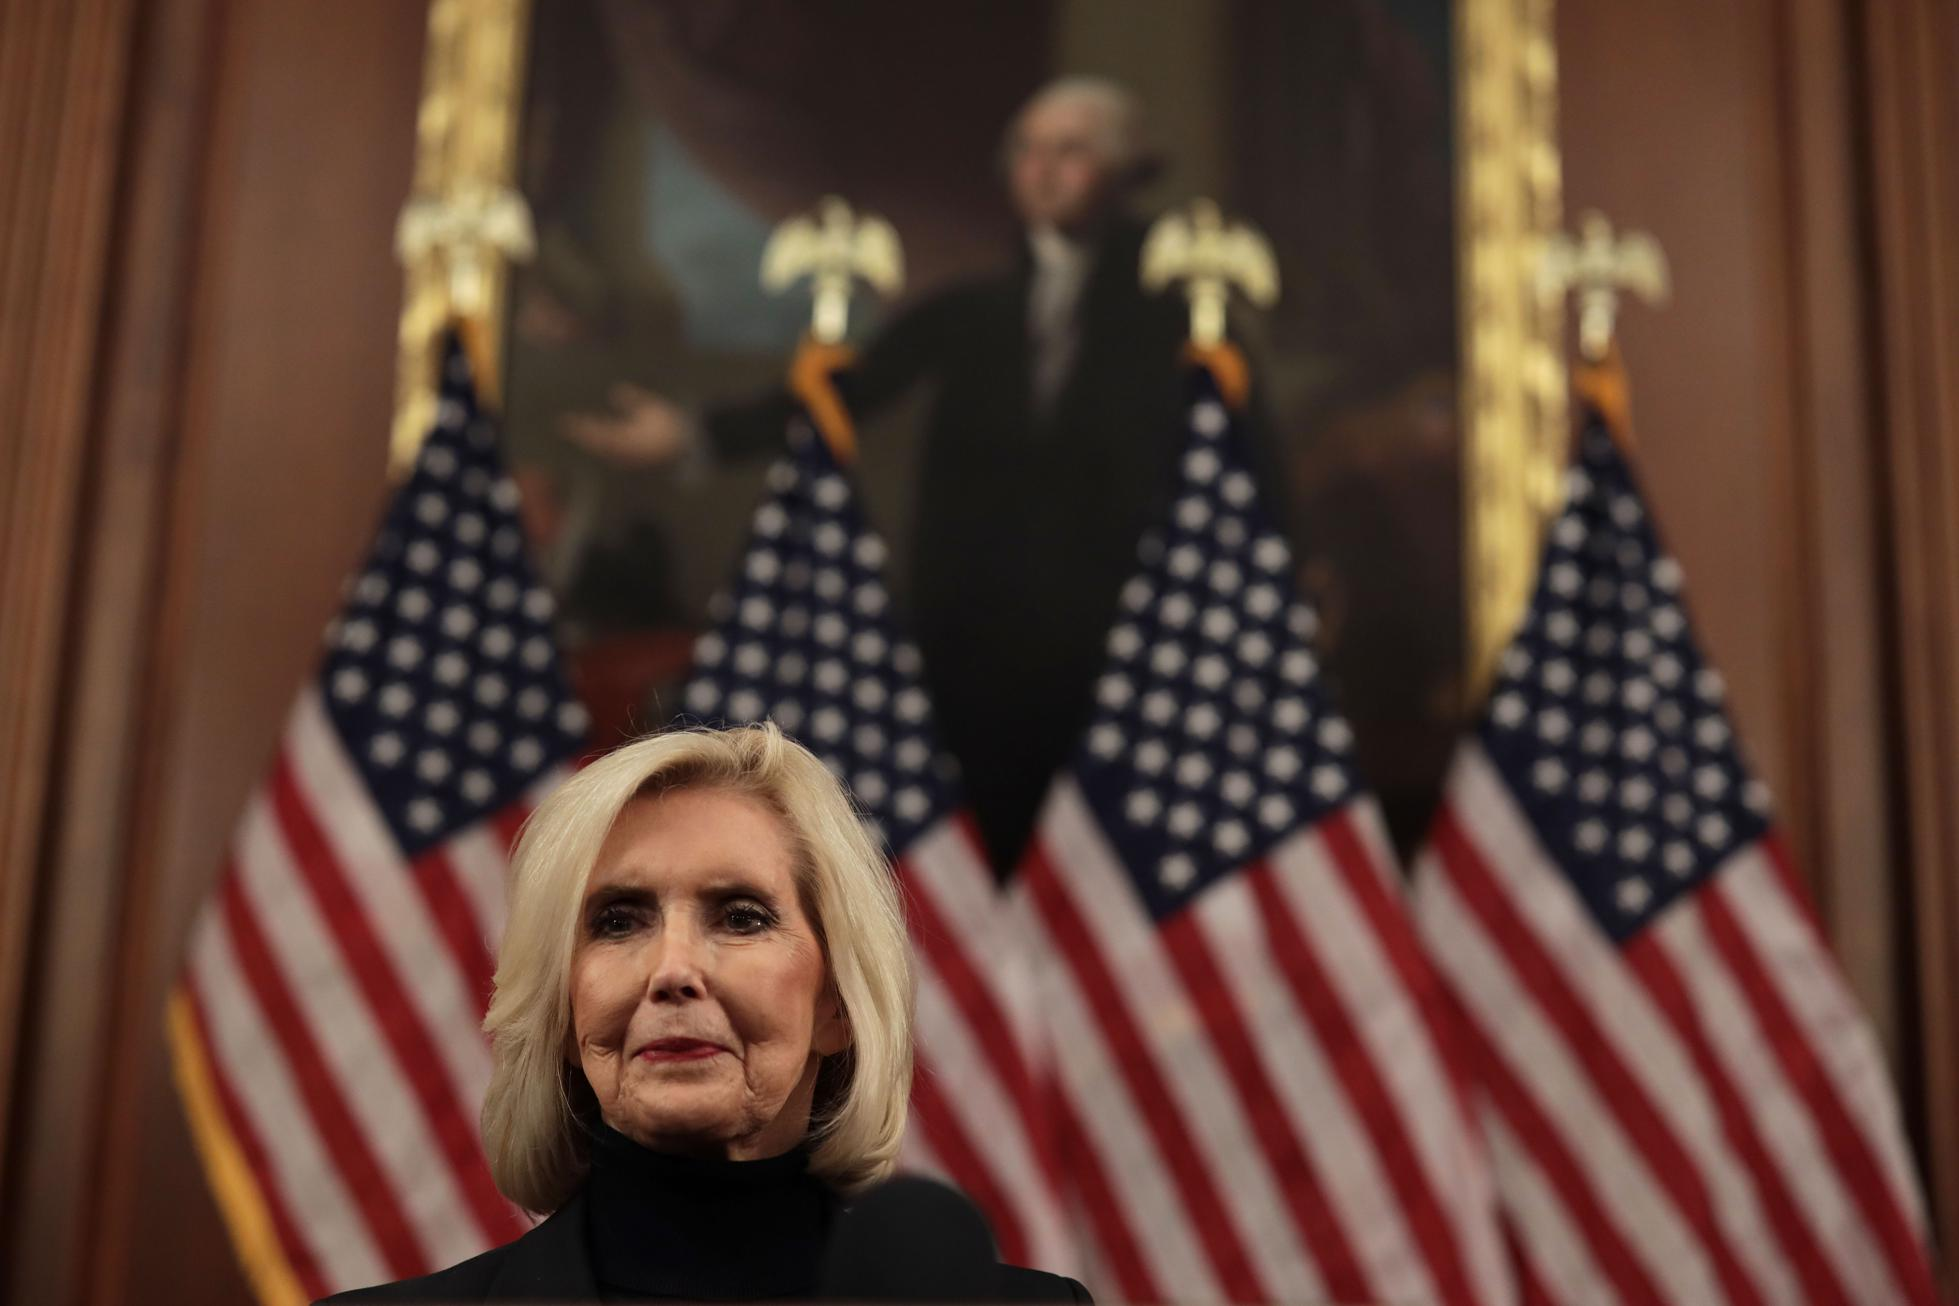 pay equality advocate Lilly Ledbetter